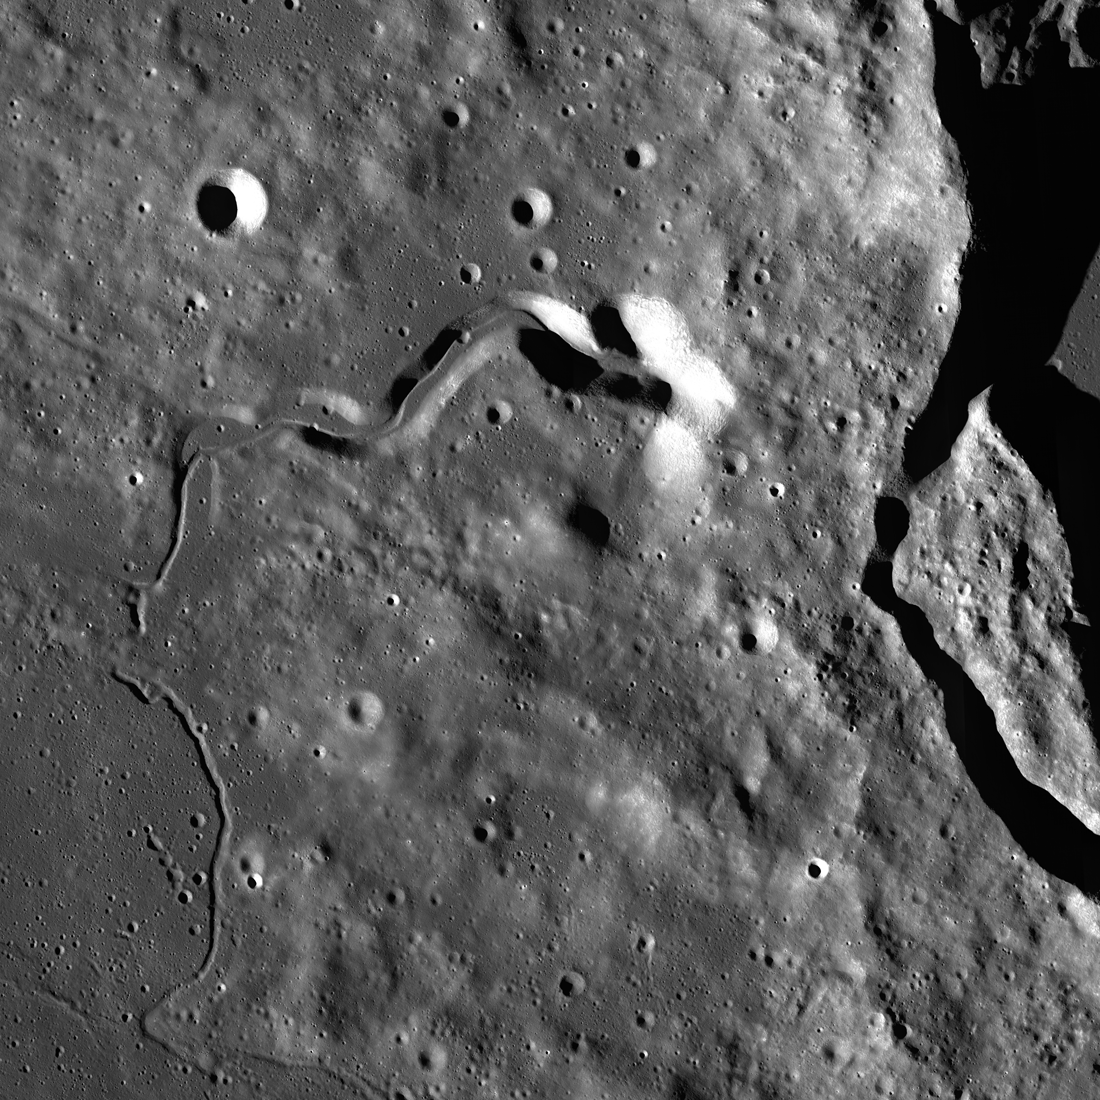 The west side of Plato